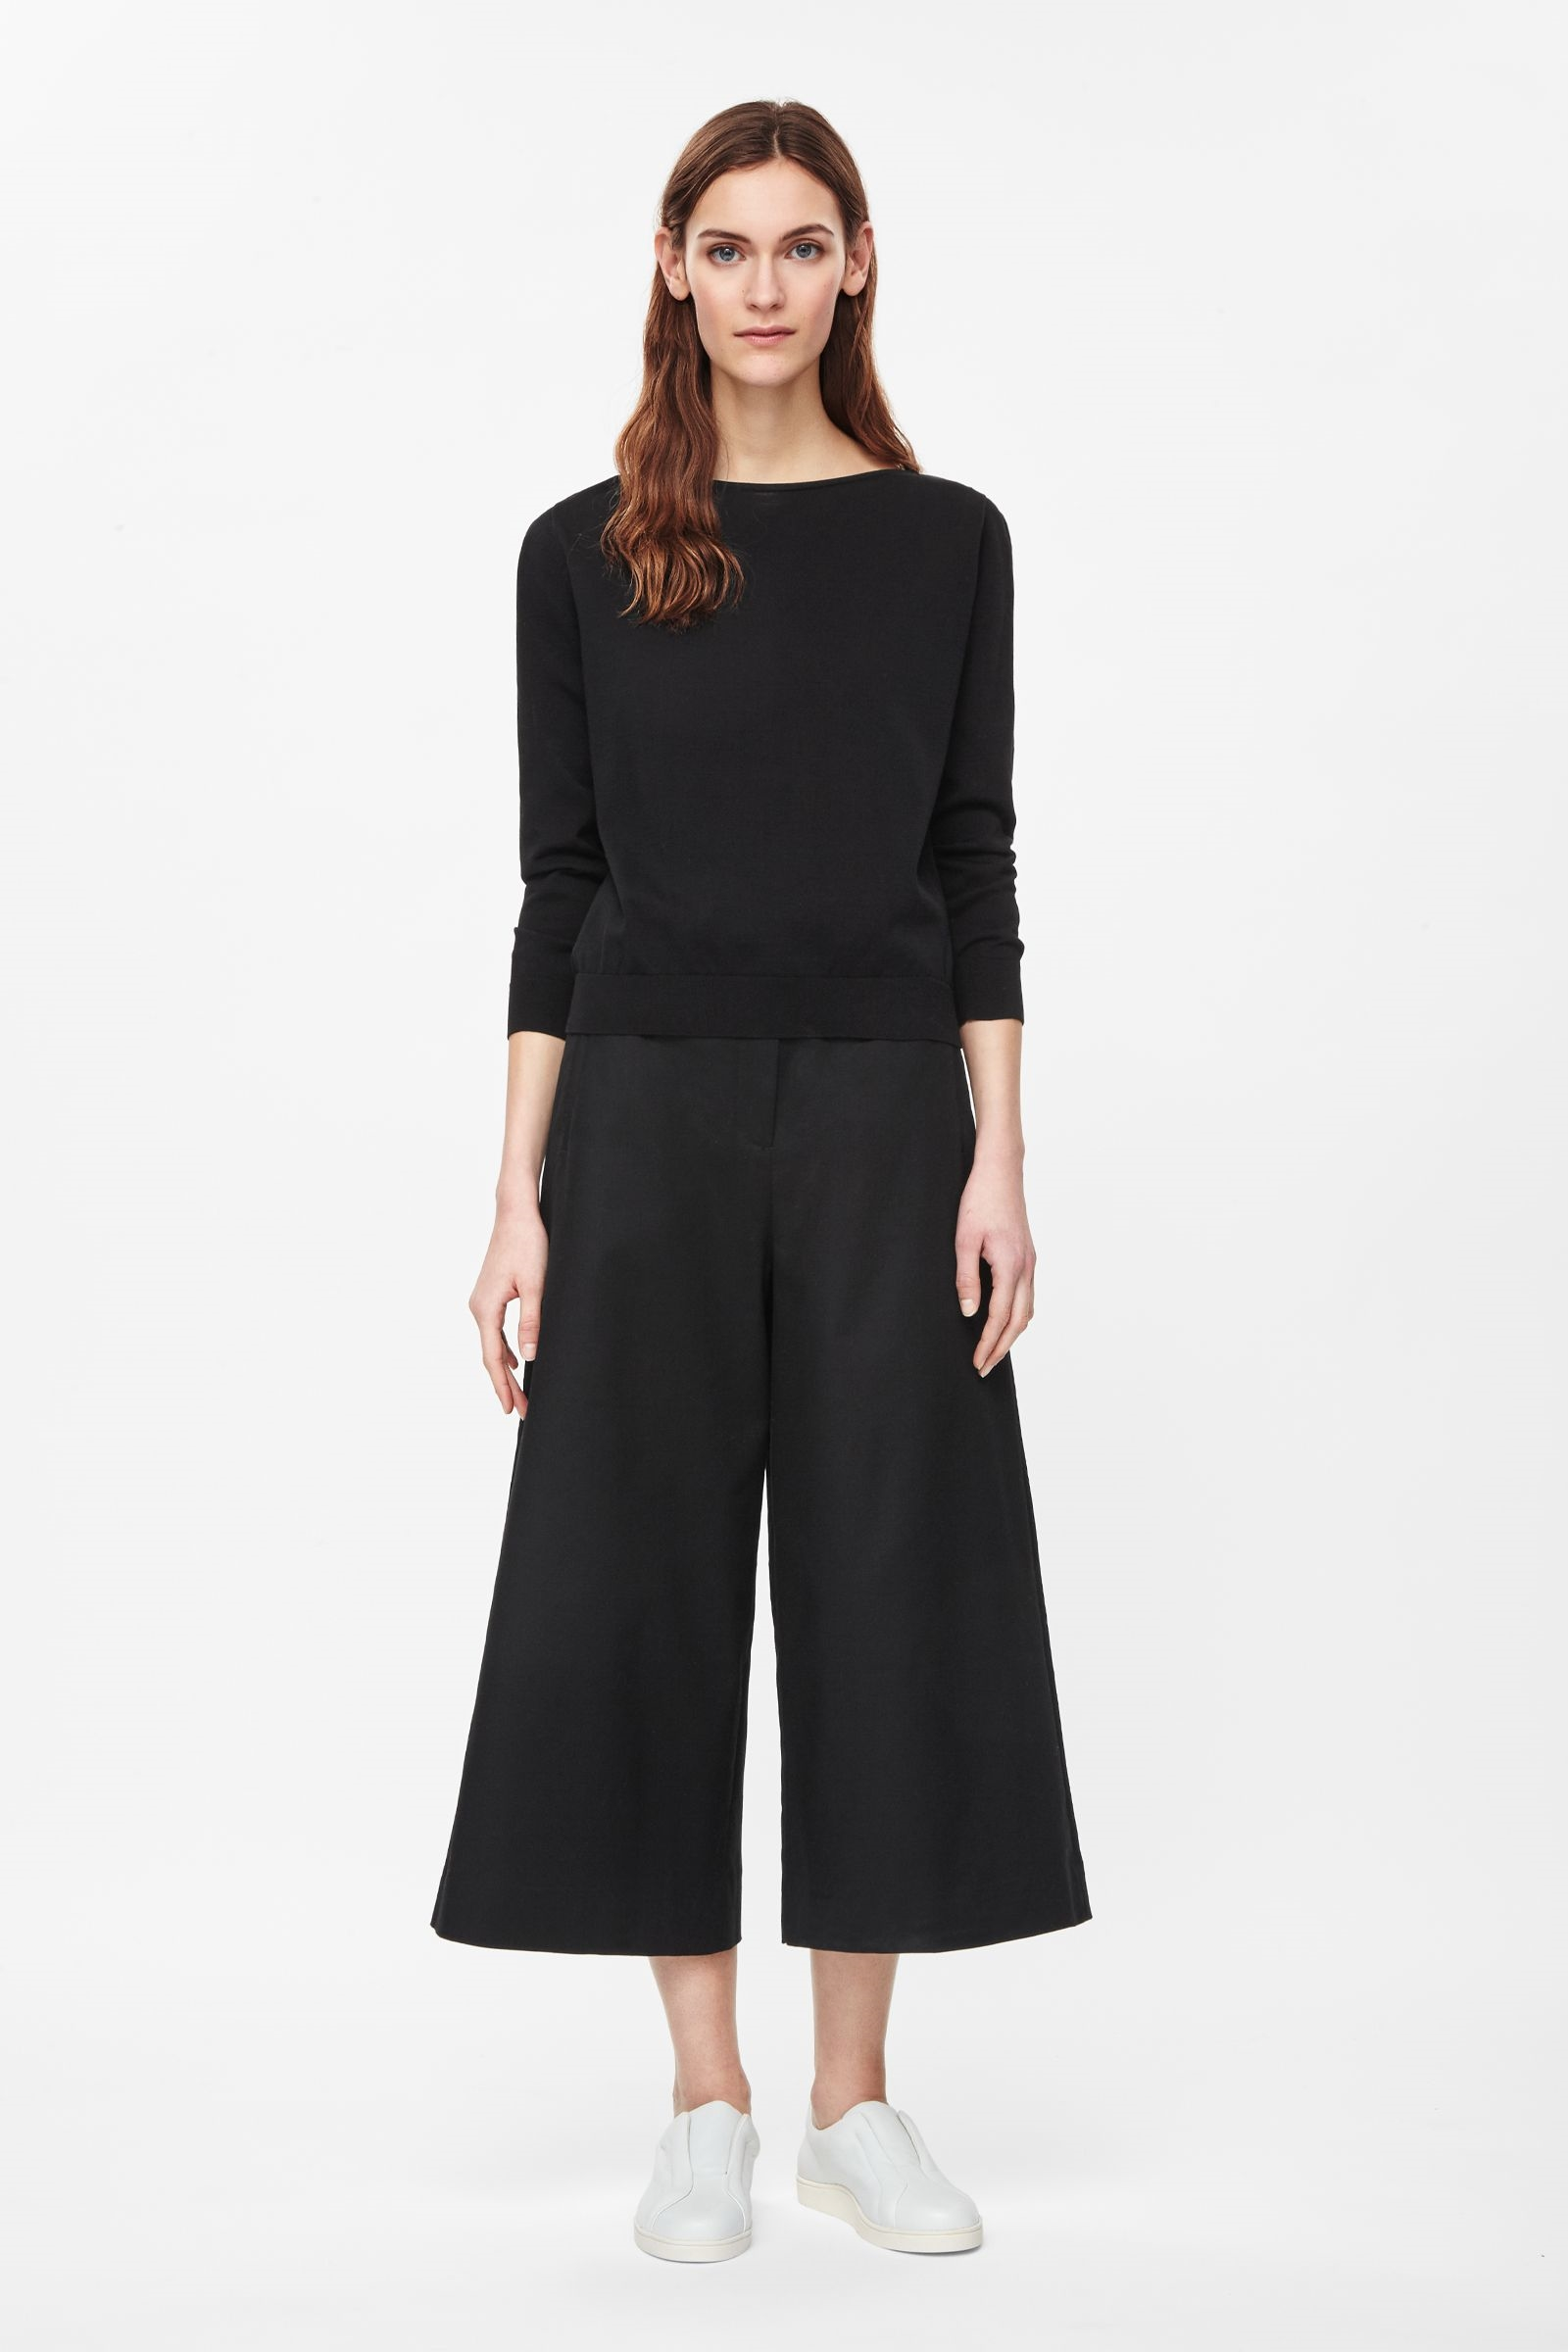 Wide-leg cropped trousers, £79, Cos